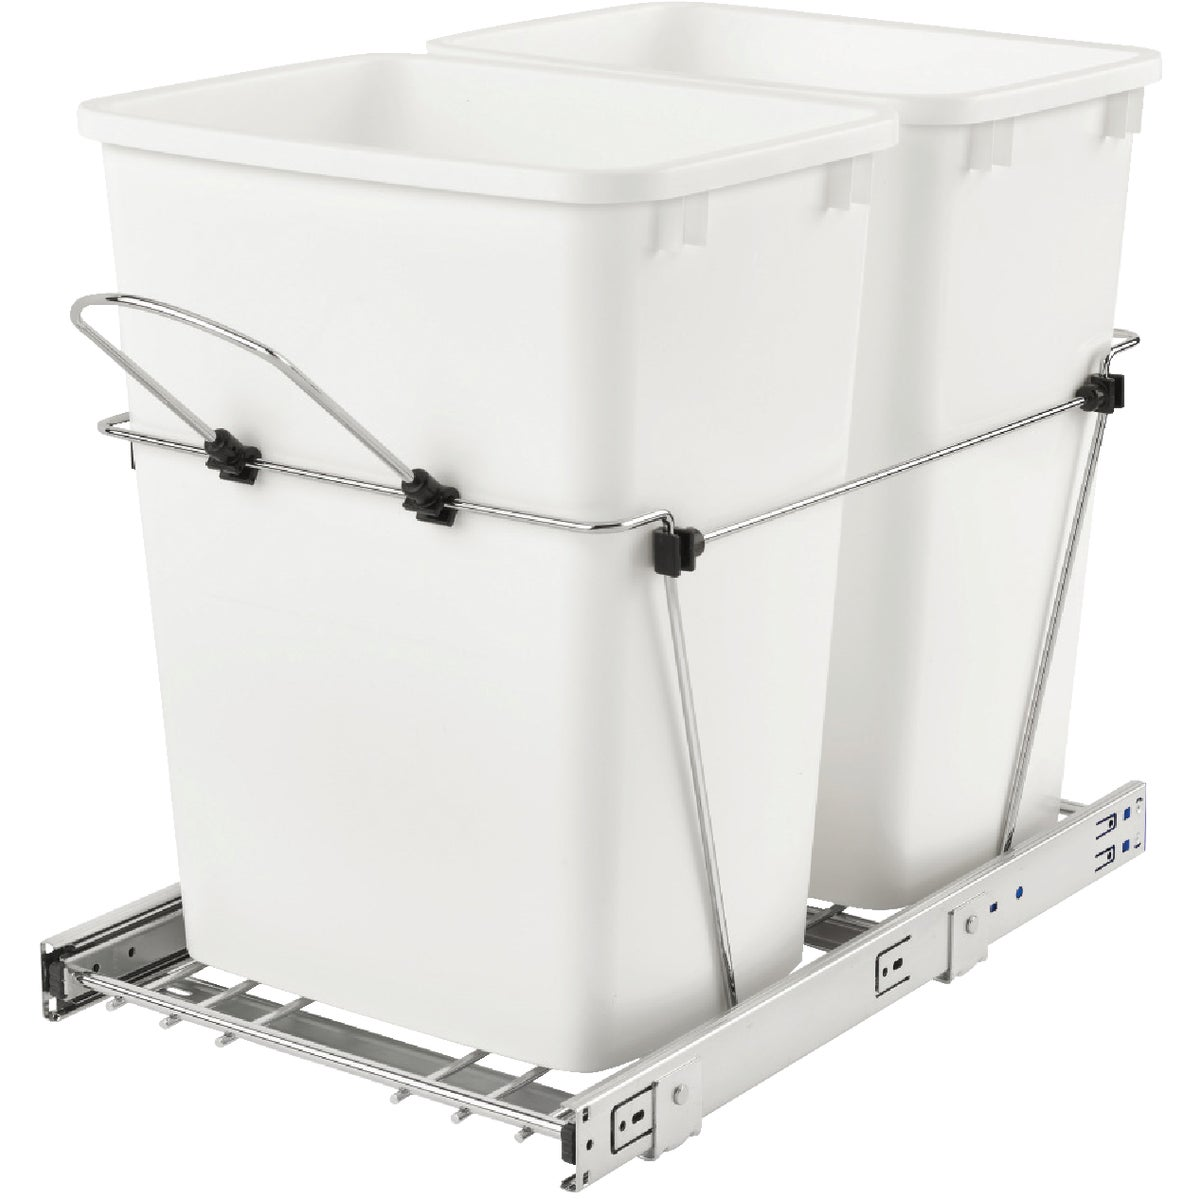 DBL 35 WASTE CONTAINER